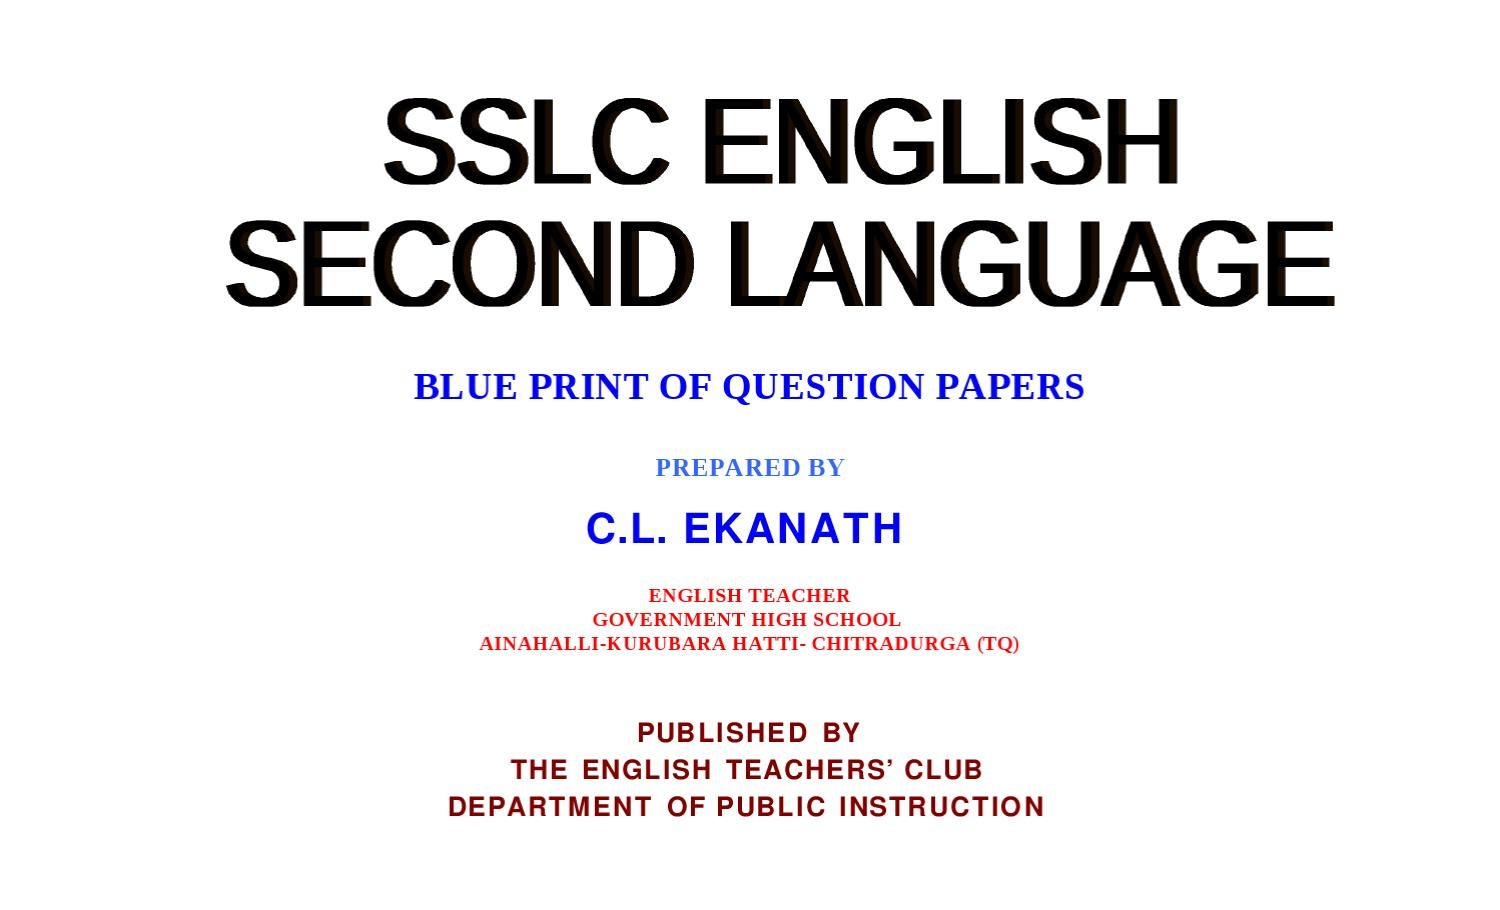 Sslc english second lang qp blue print by c l ekanath by education sslc english second lang qp blue print by c l ekanath by education chitradurga issuu malvernweather Image collections